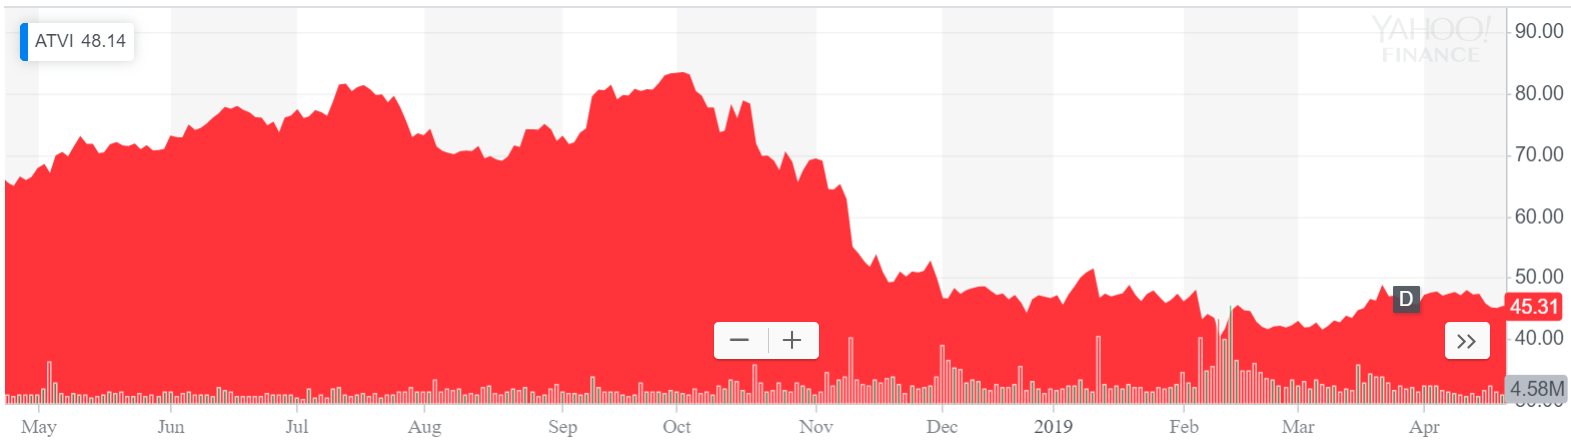 Activision Stock Chart